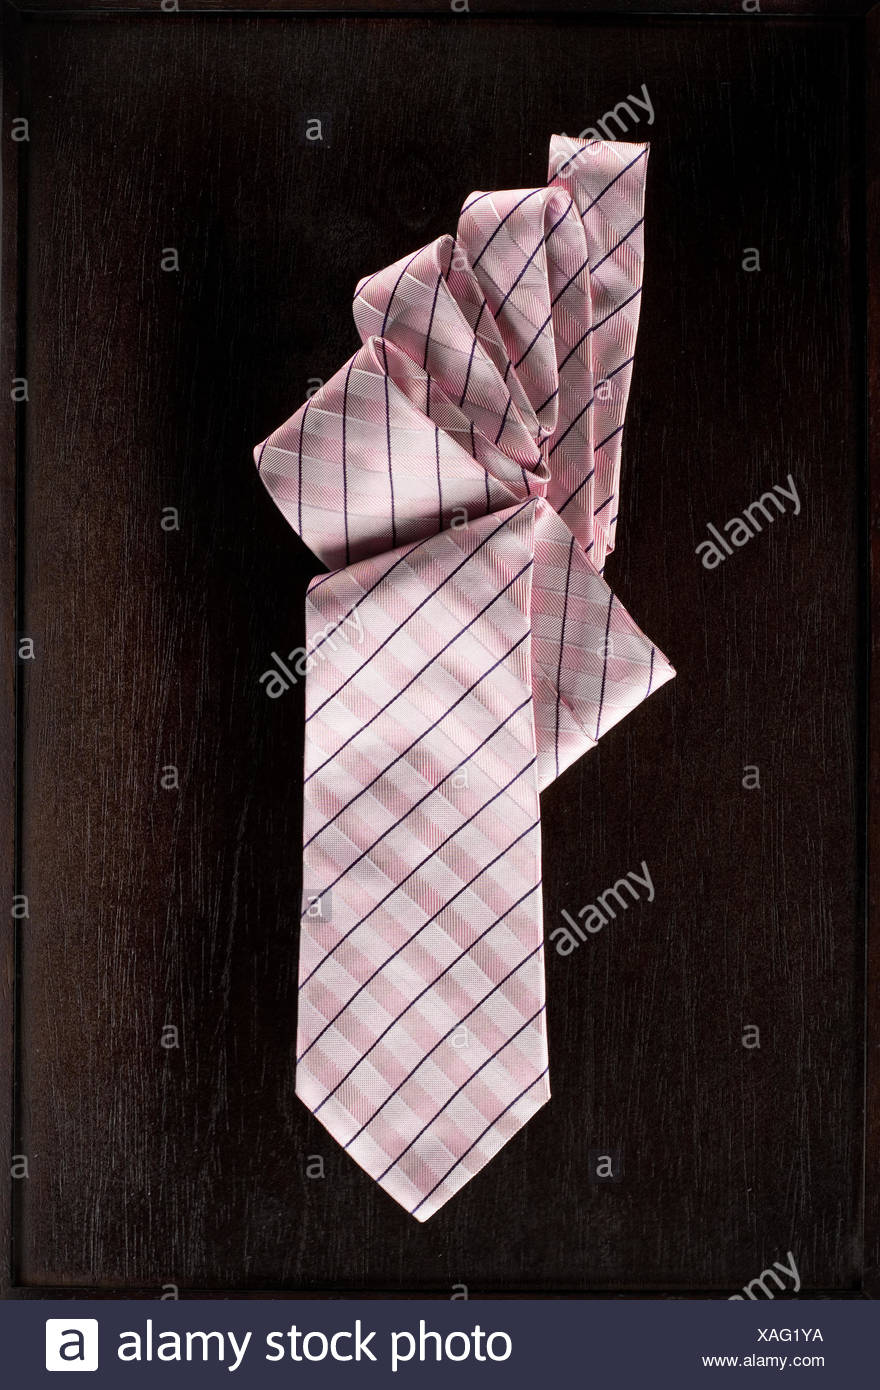 Pink necktie with chequered pattern on brown surface - Stock Image